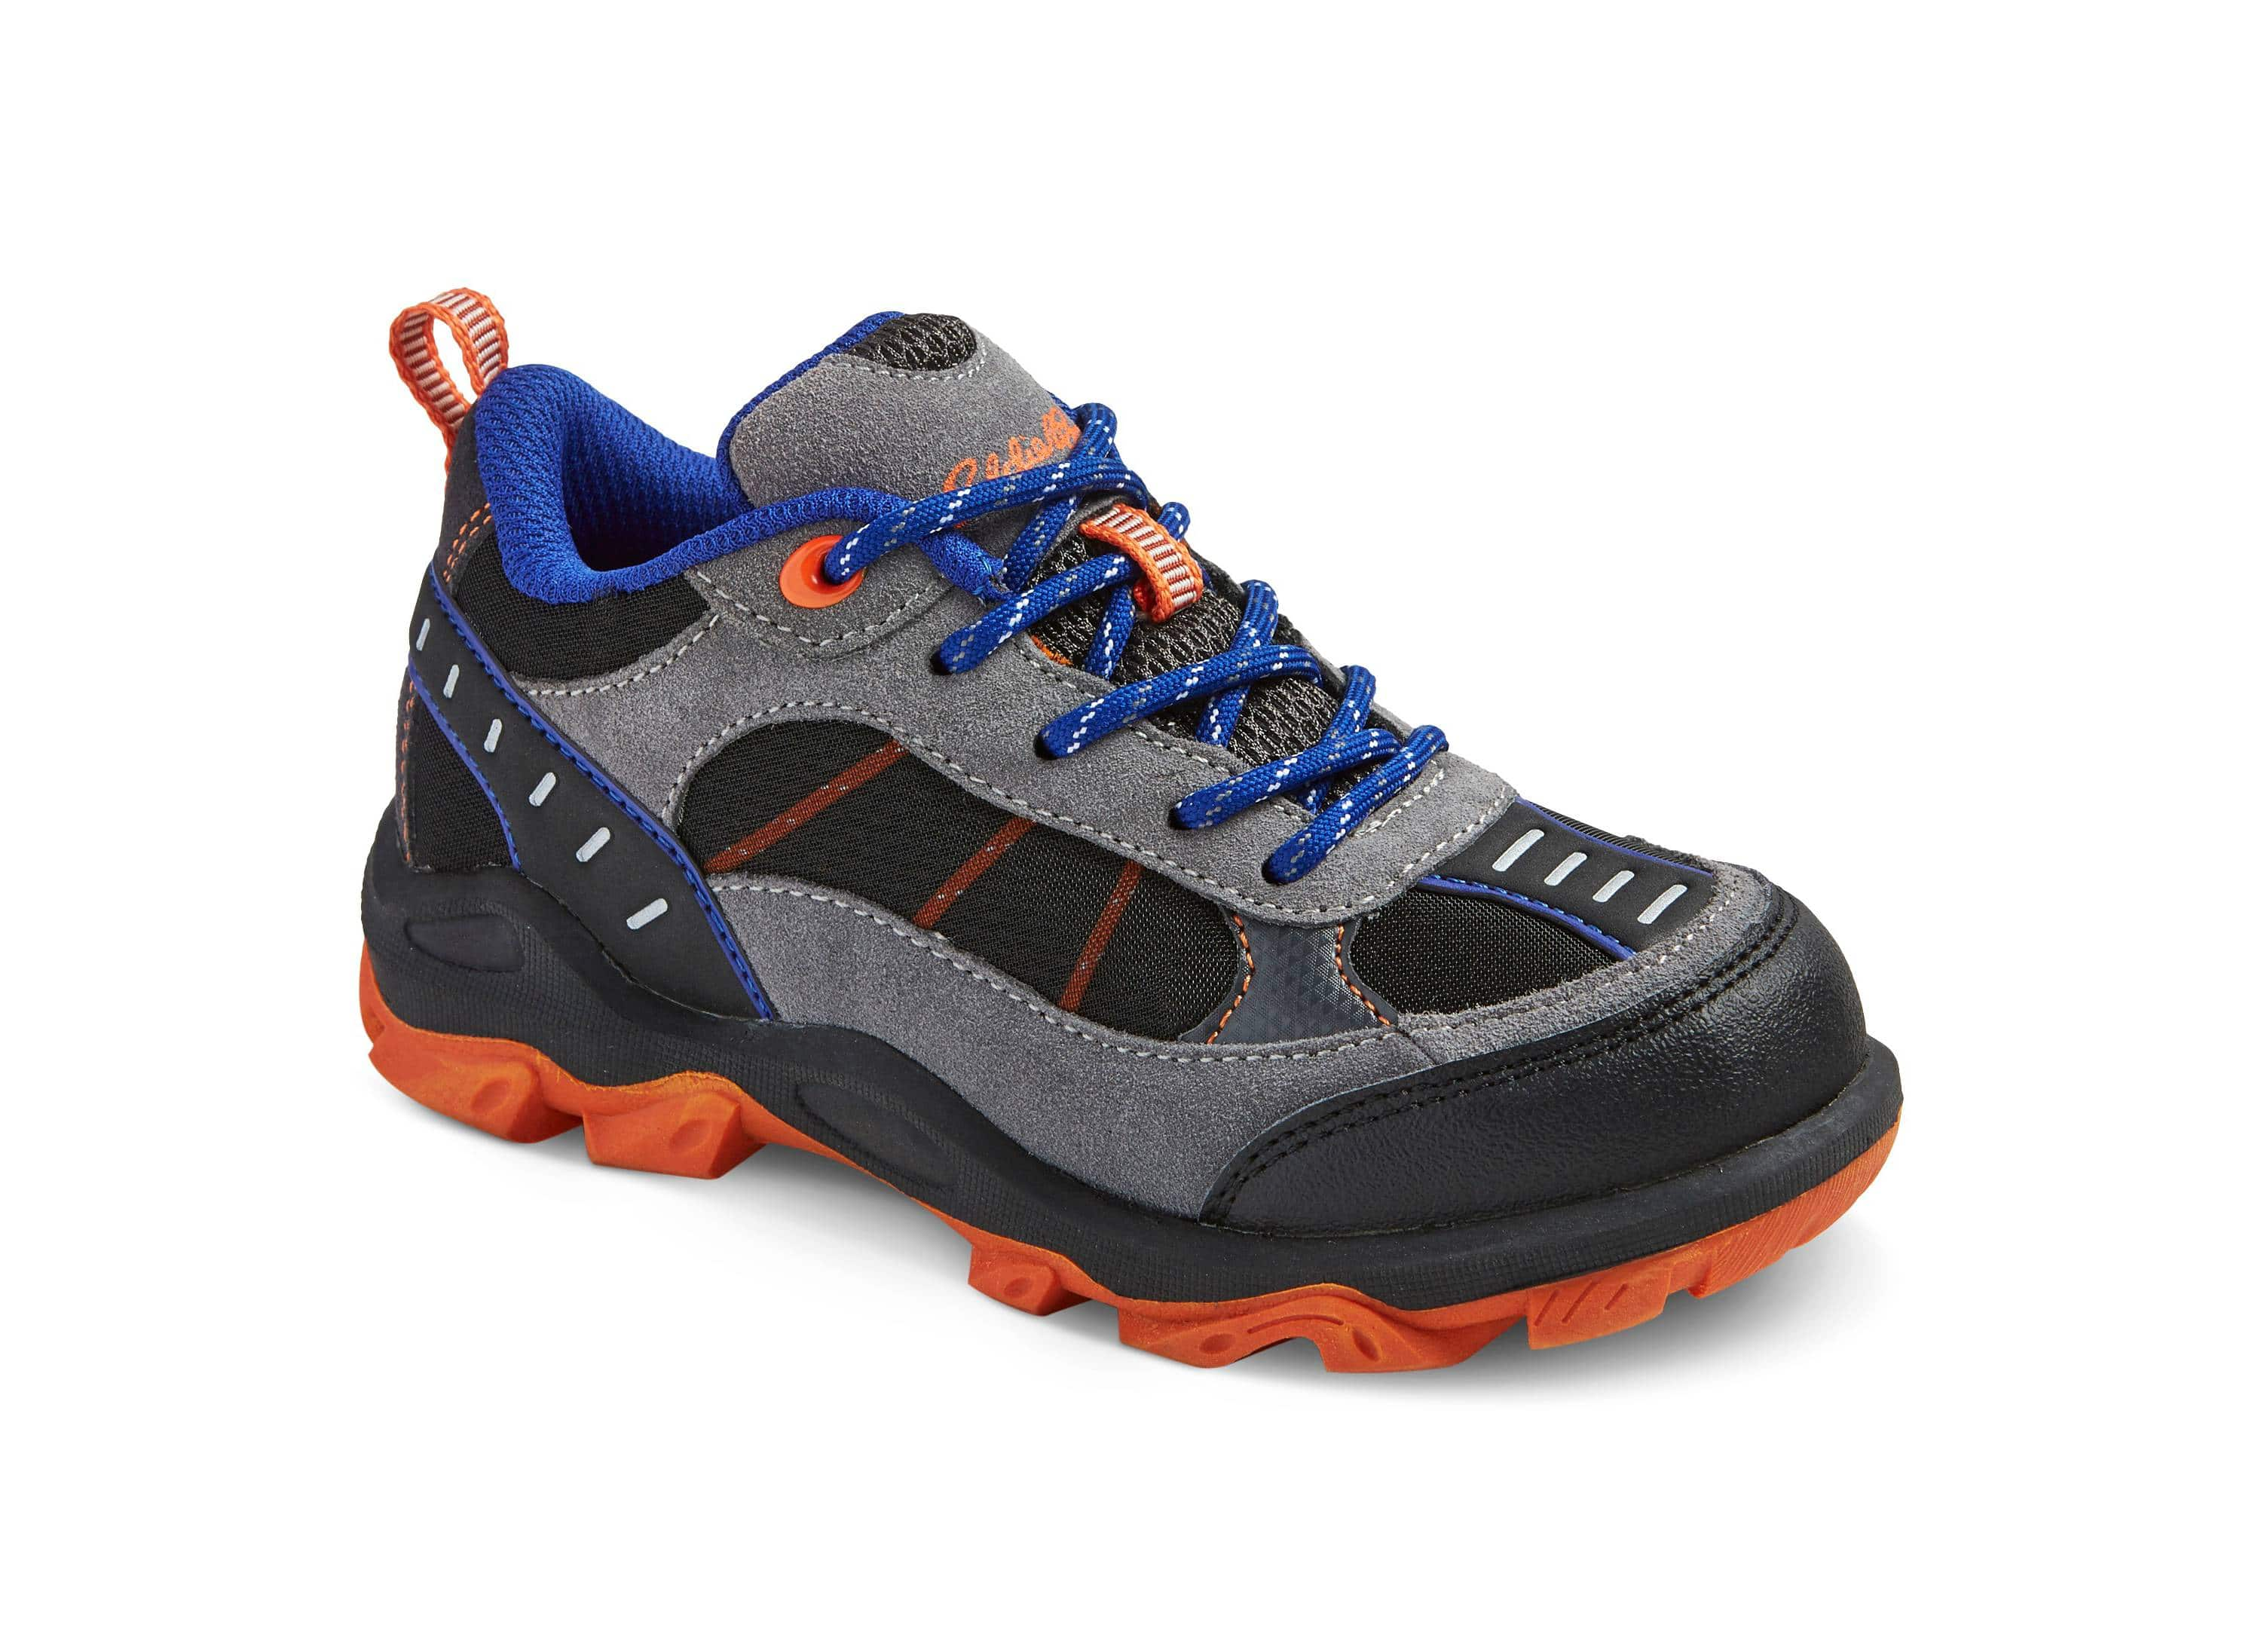 Eddie Bauer Boys' Play Sneakers Grey Or Black Free Ship To Store 70% Off $8.98